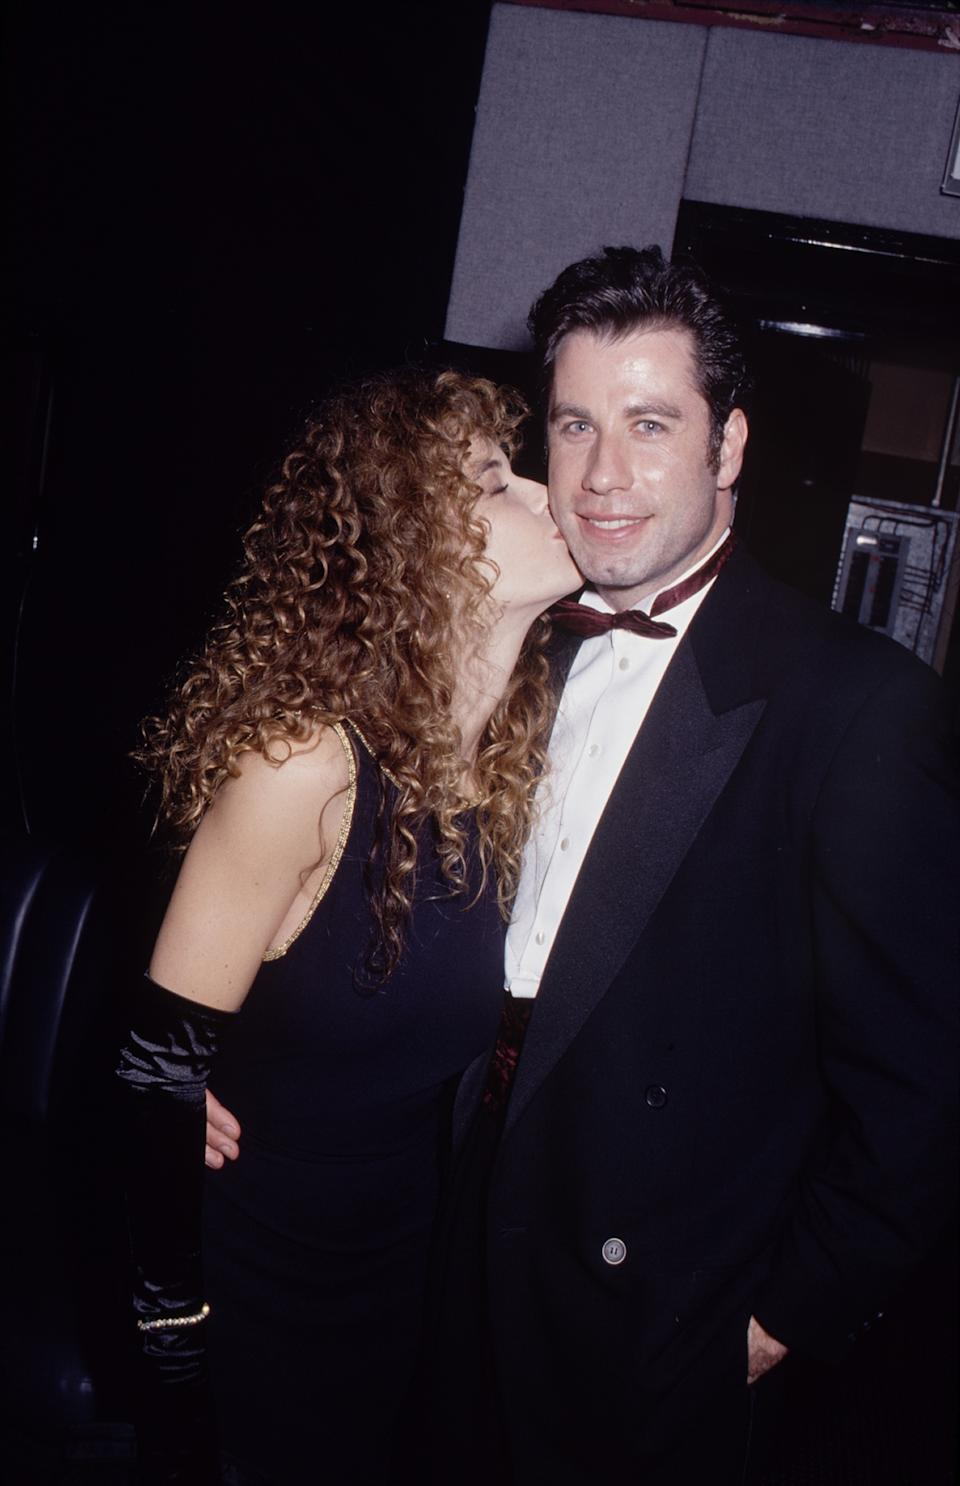 UNITED STATES - Actor John Travolta and his wife, actress Kelly Preston.  (Photo by The LIFE Picture Collection via Getty Images)